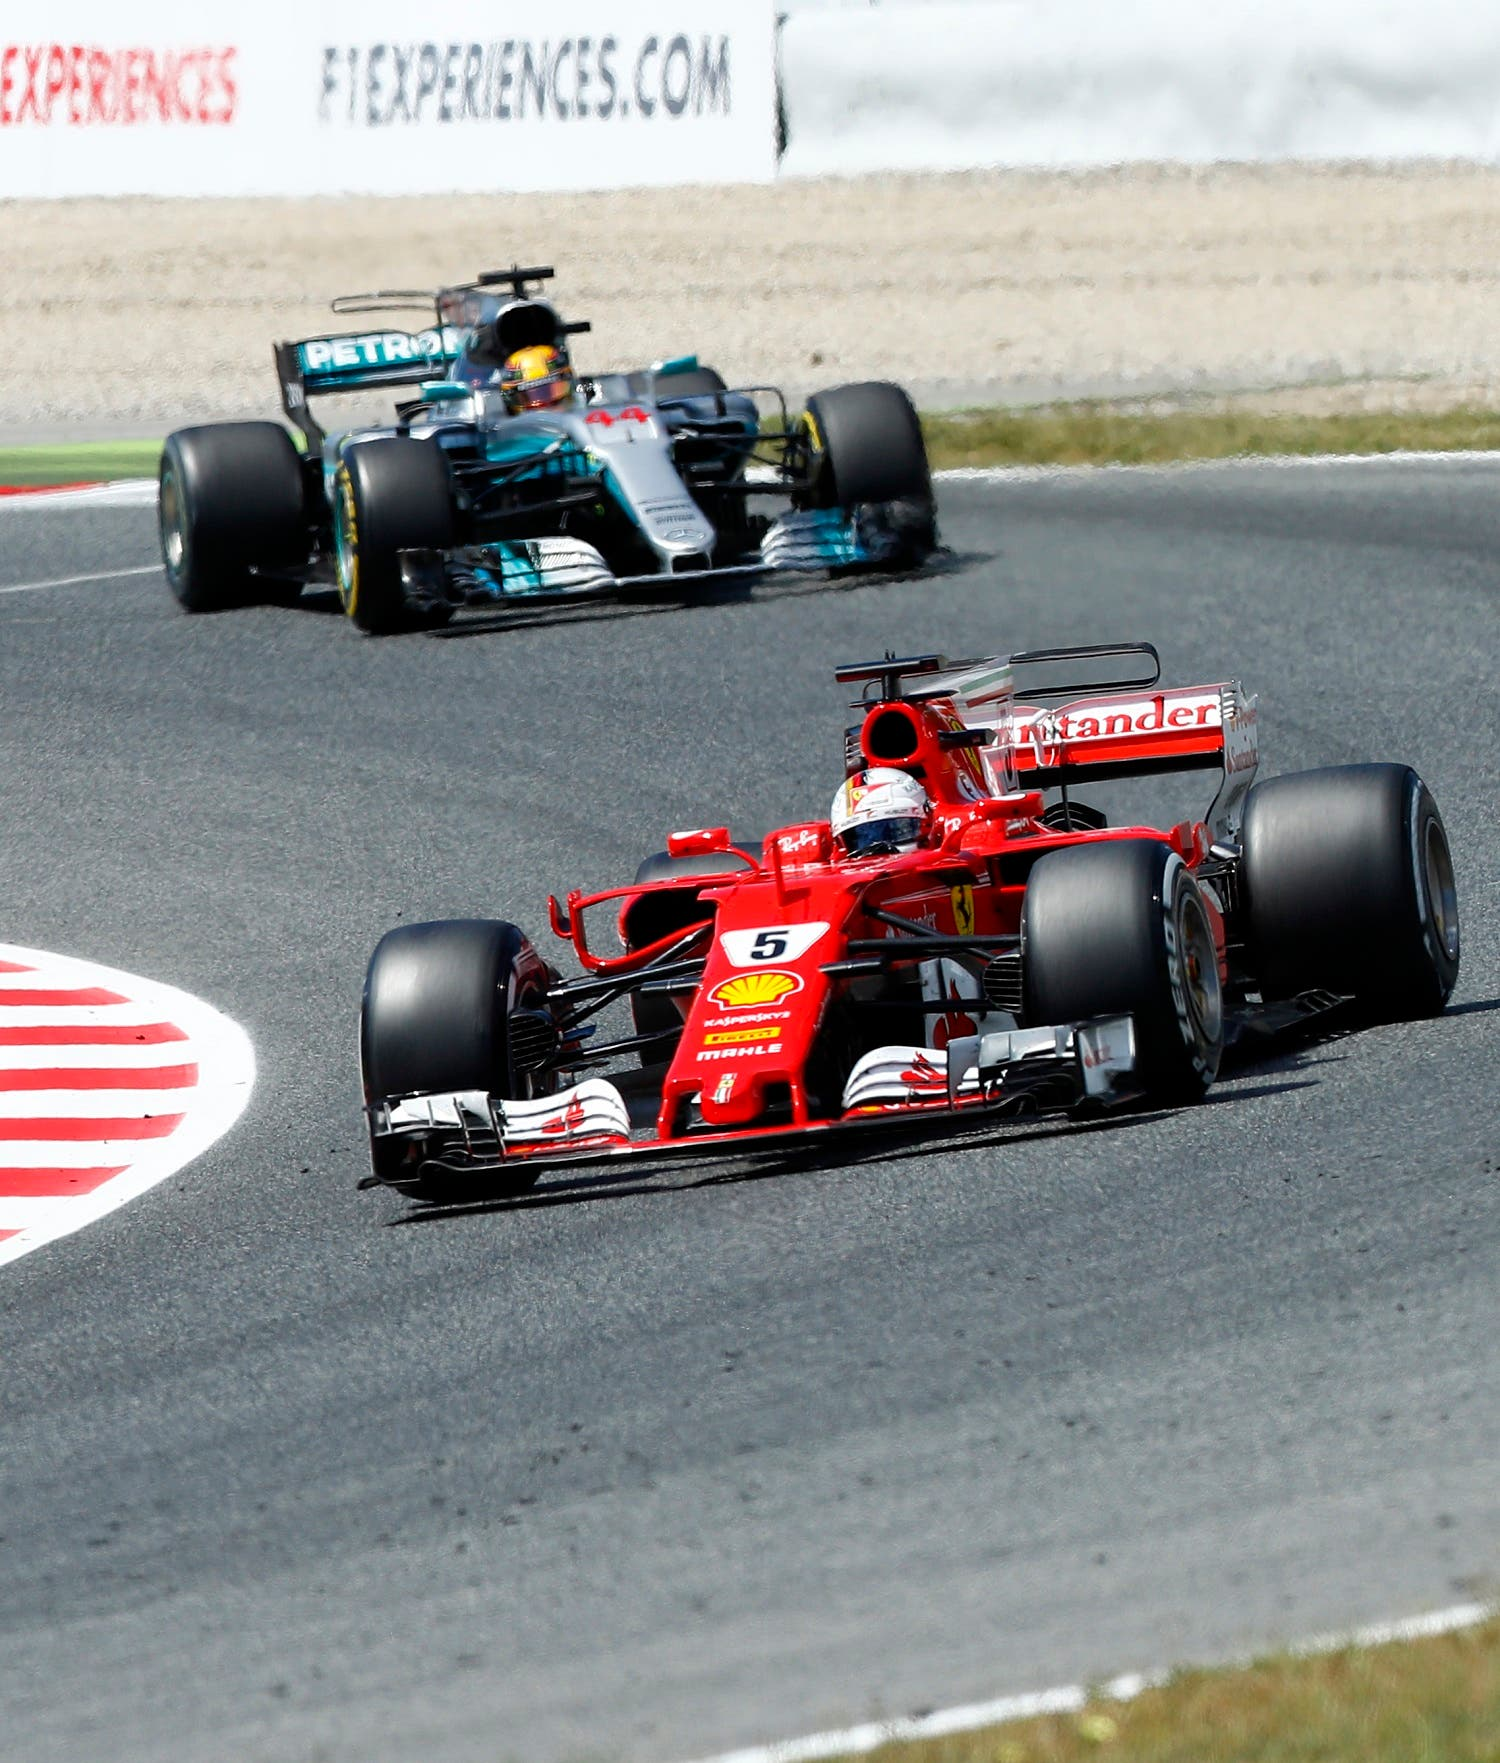 Ferrari's Sebastian Vettel (right), leads Mercedes driver Lewis Hamilton through a corner during the Spanish Formula One Grand Prix. (AP)